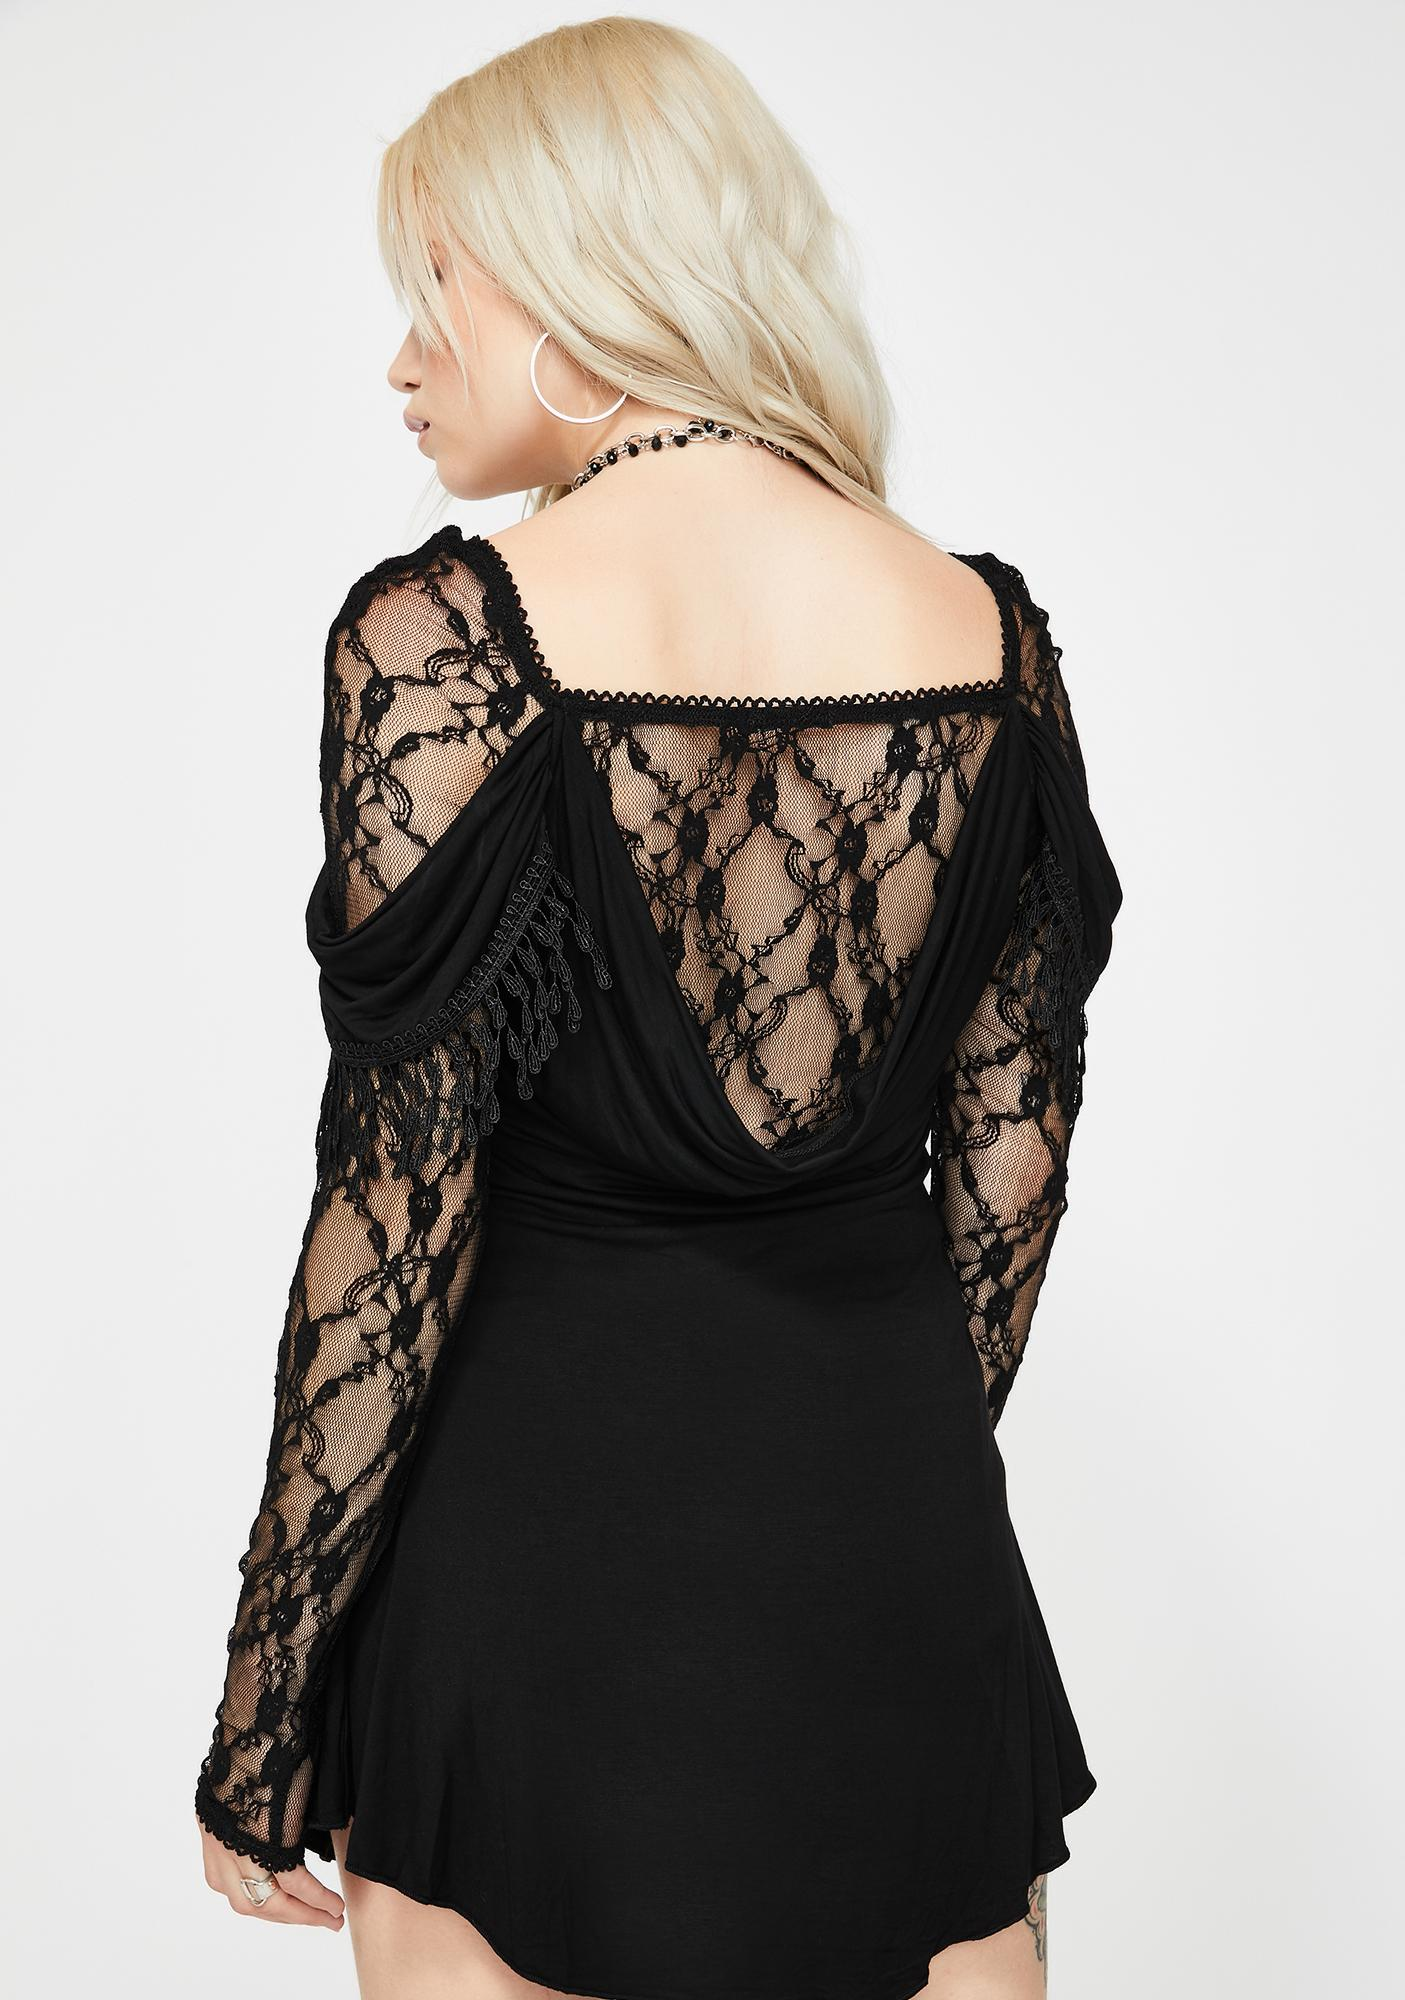 Devil Fashion Lace And Ruffle Long Sleeve Top